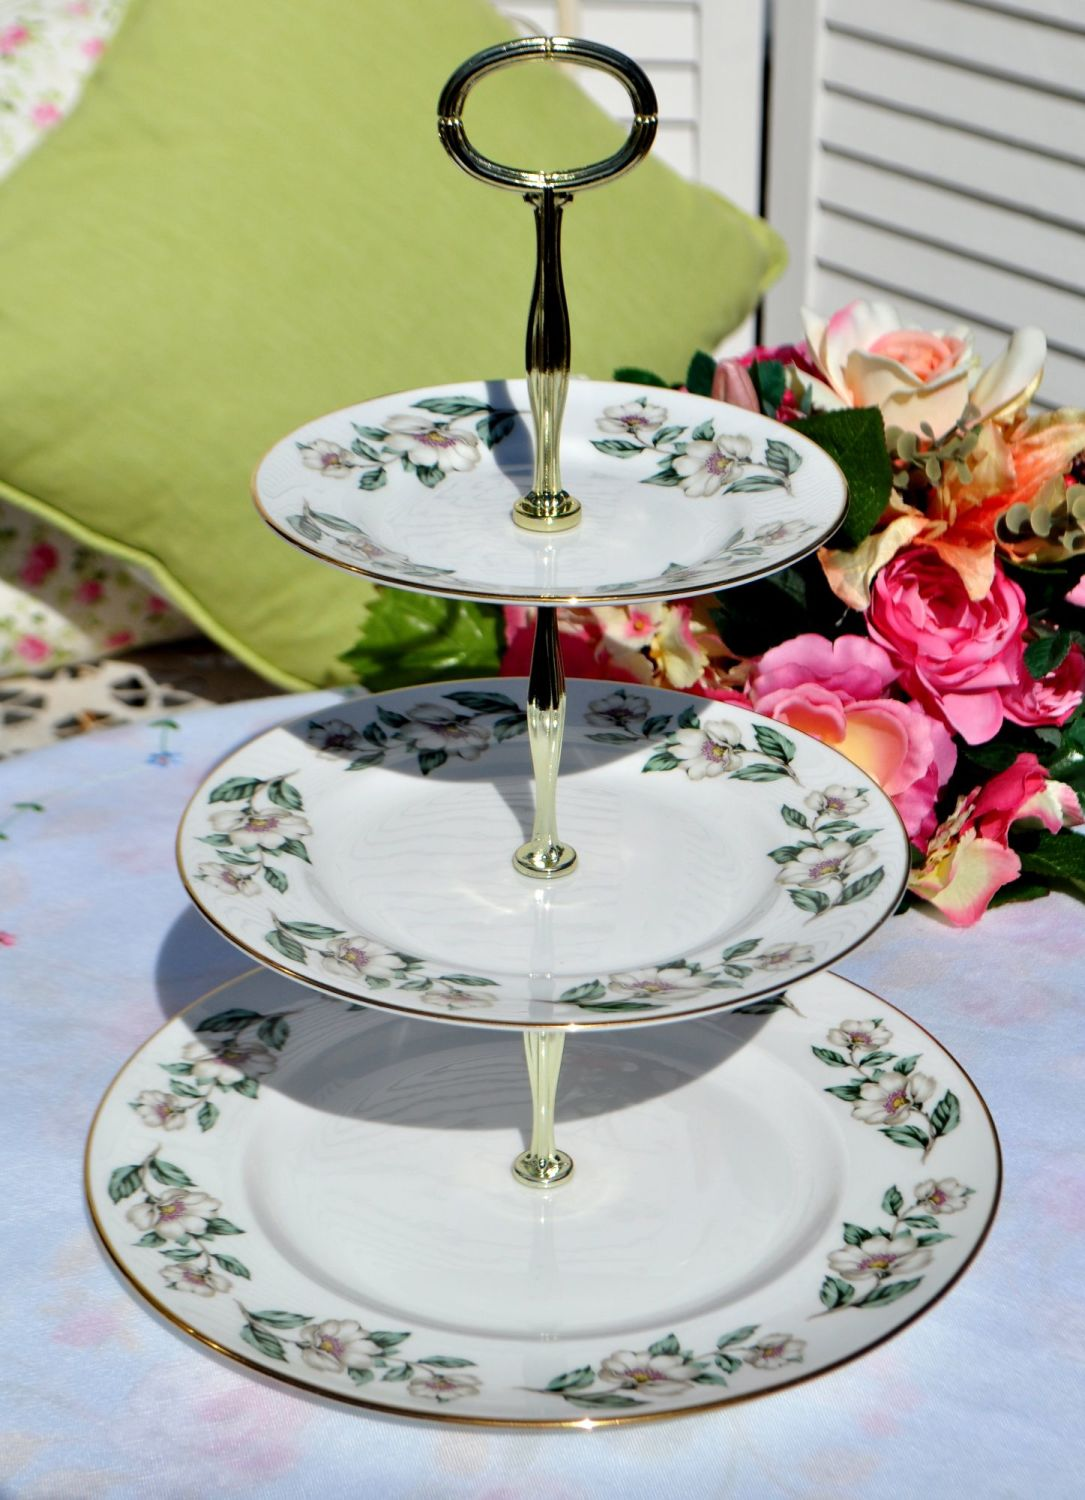 Crown Staffordshire White Rose 3 Tier Cake Stand